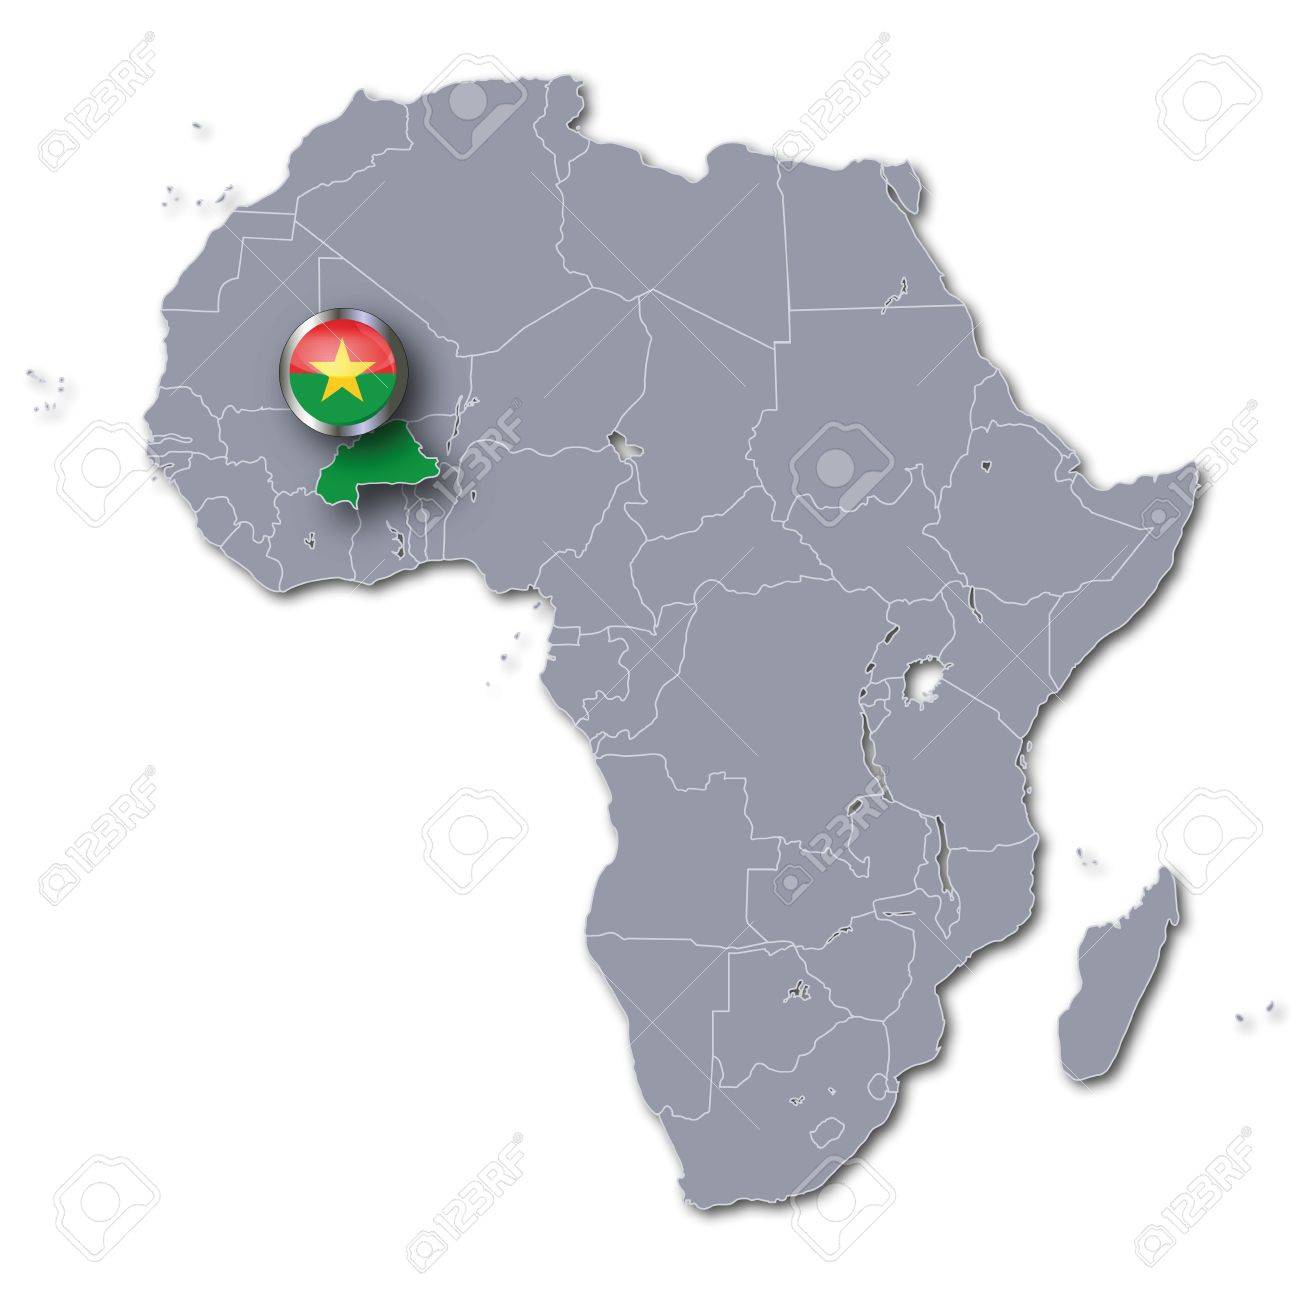 Africa Map Burkina Faso Stock Photo, Picture And Royalty Free